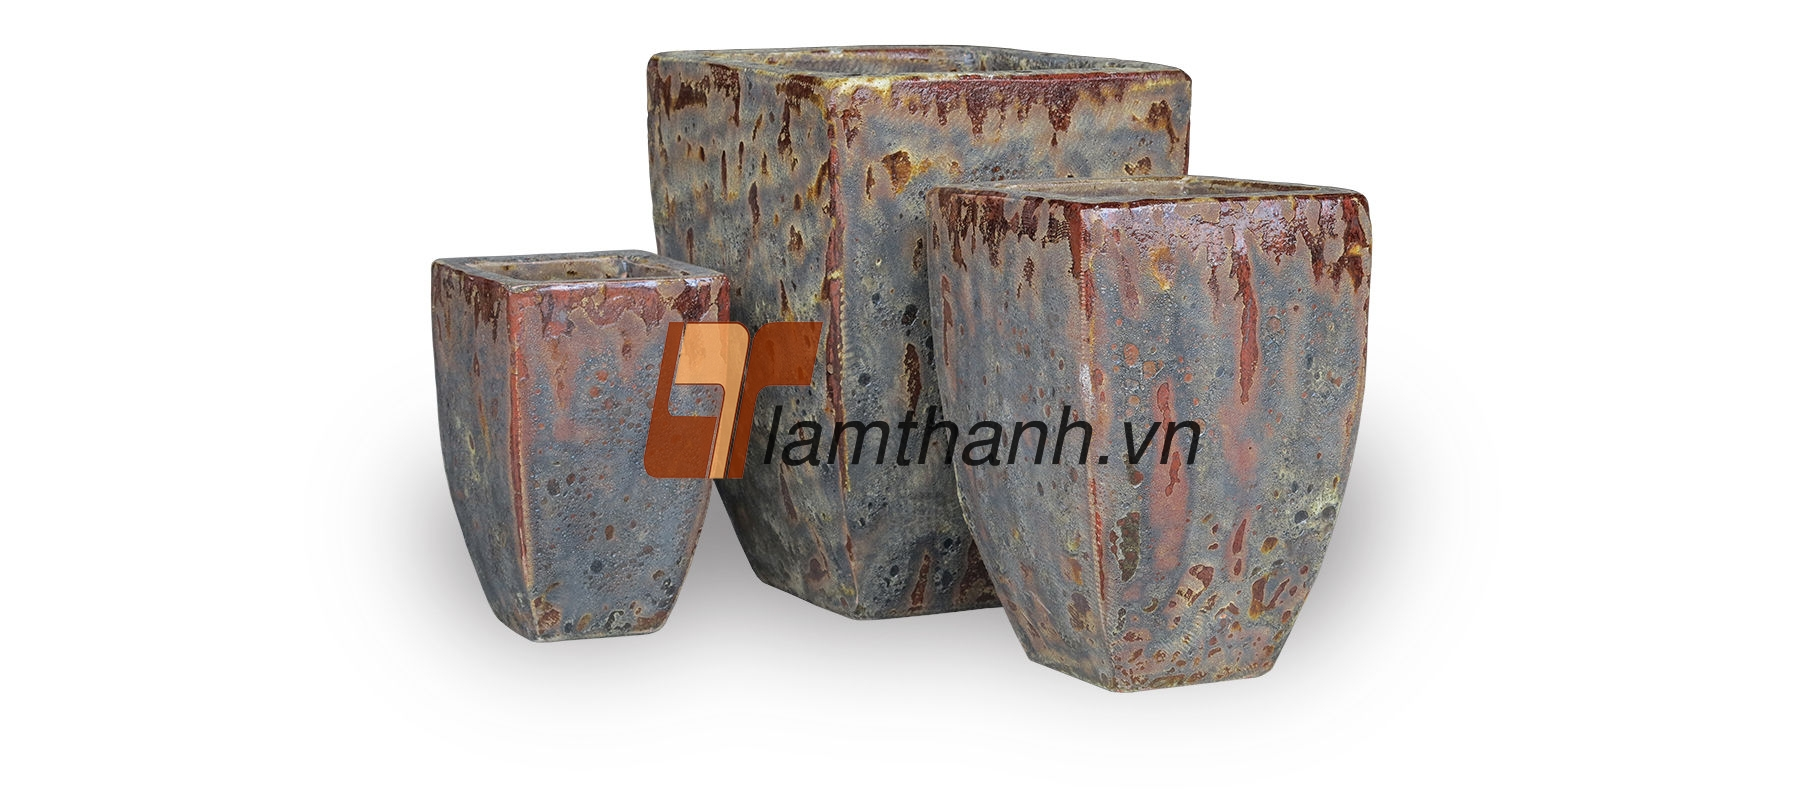 vietnam ceramic, pottery 04